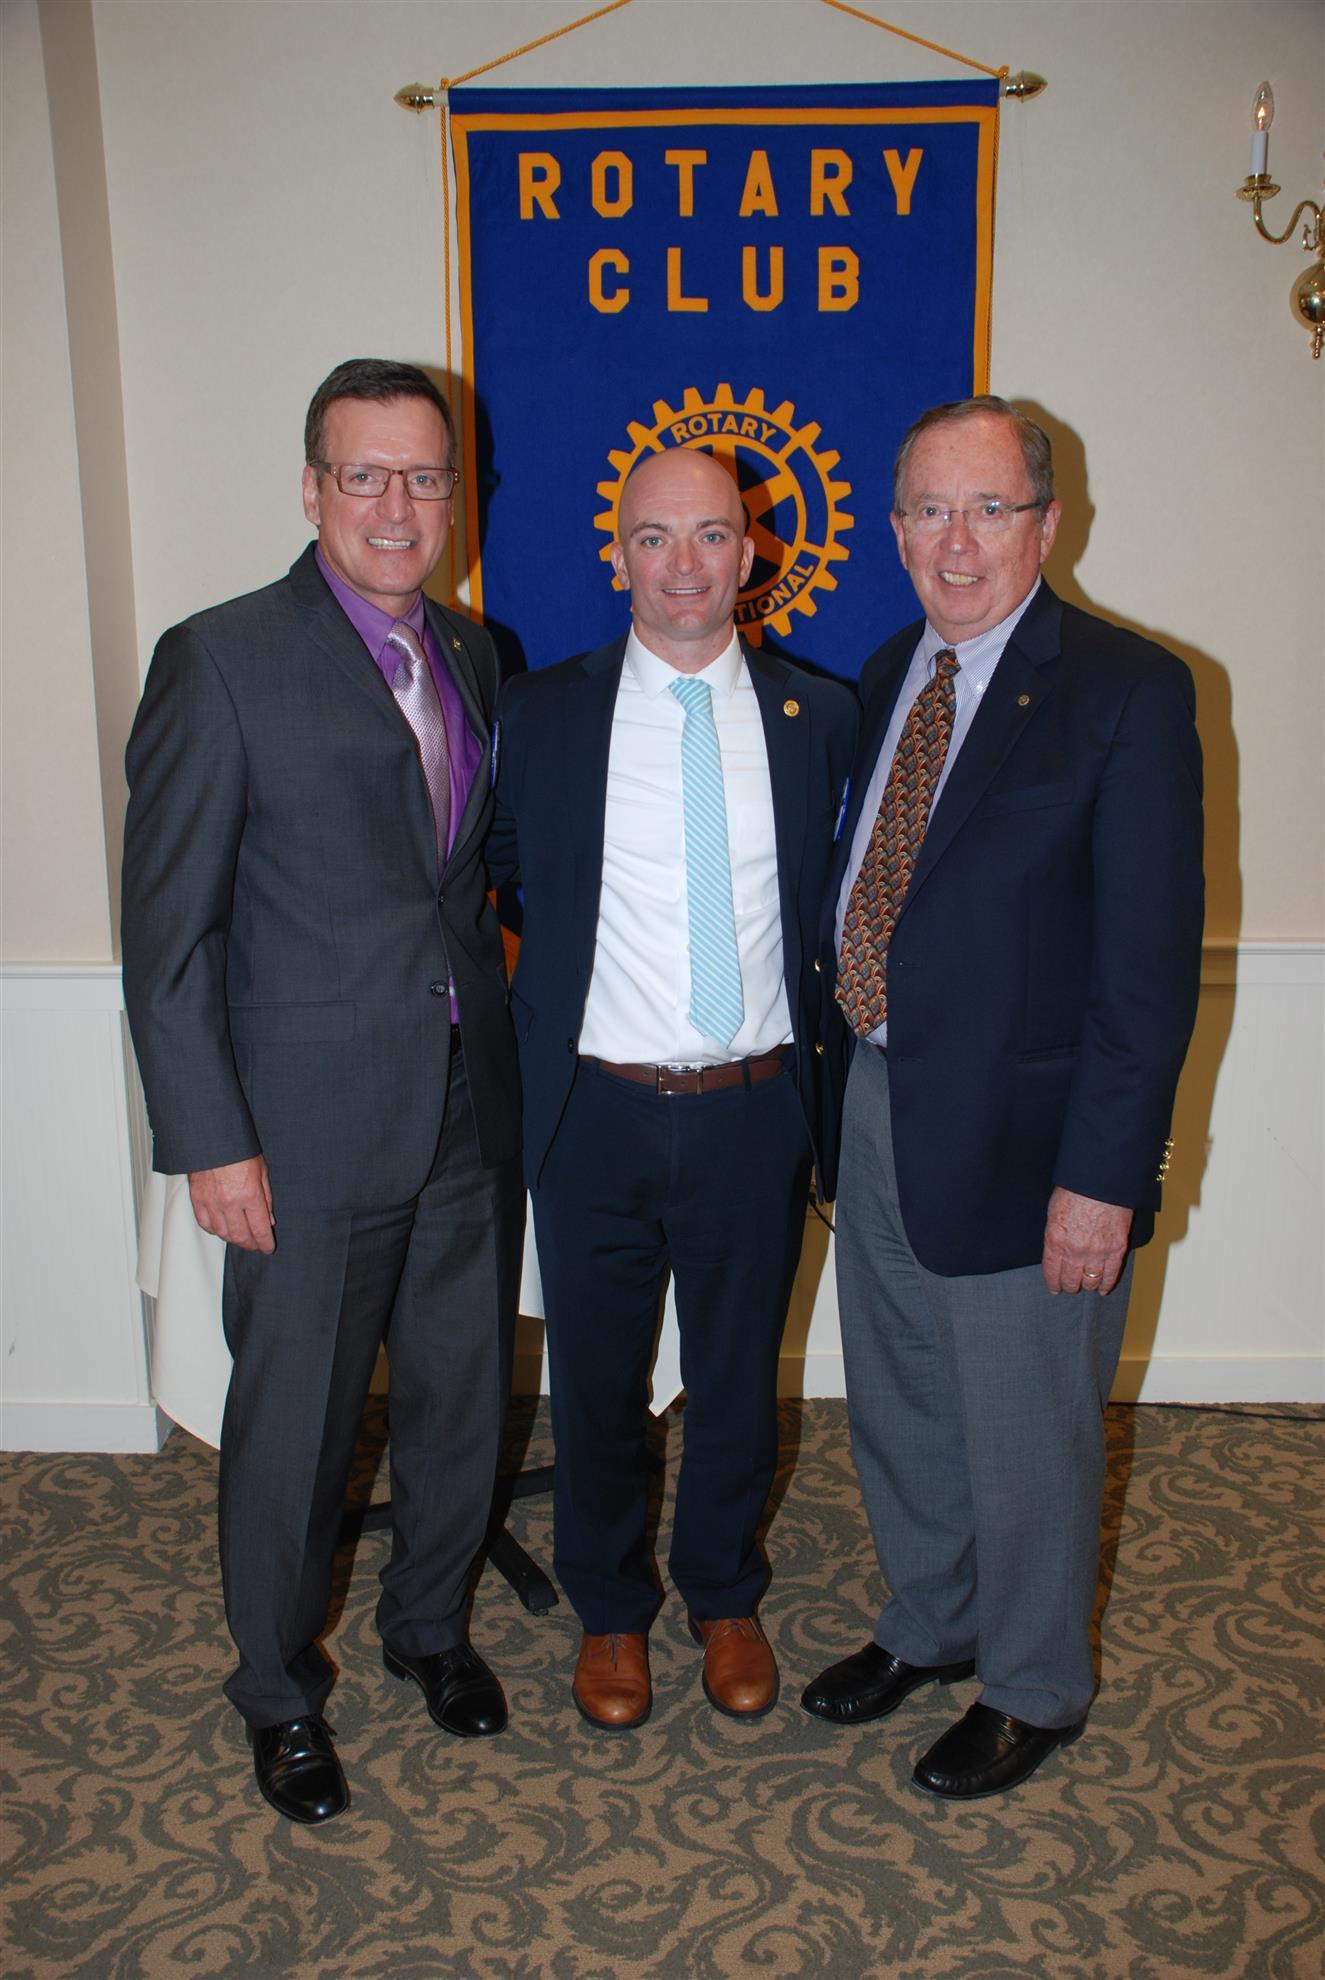 Stories | Rotary club of Portsmouth